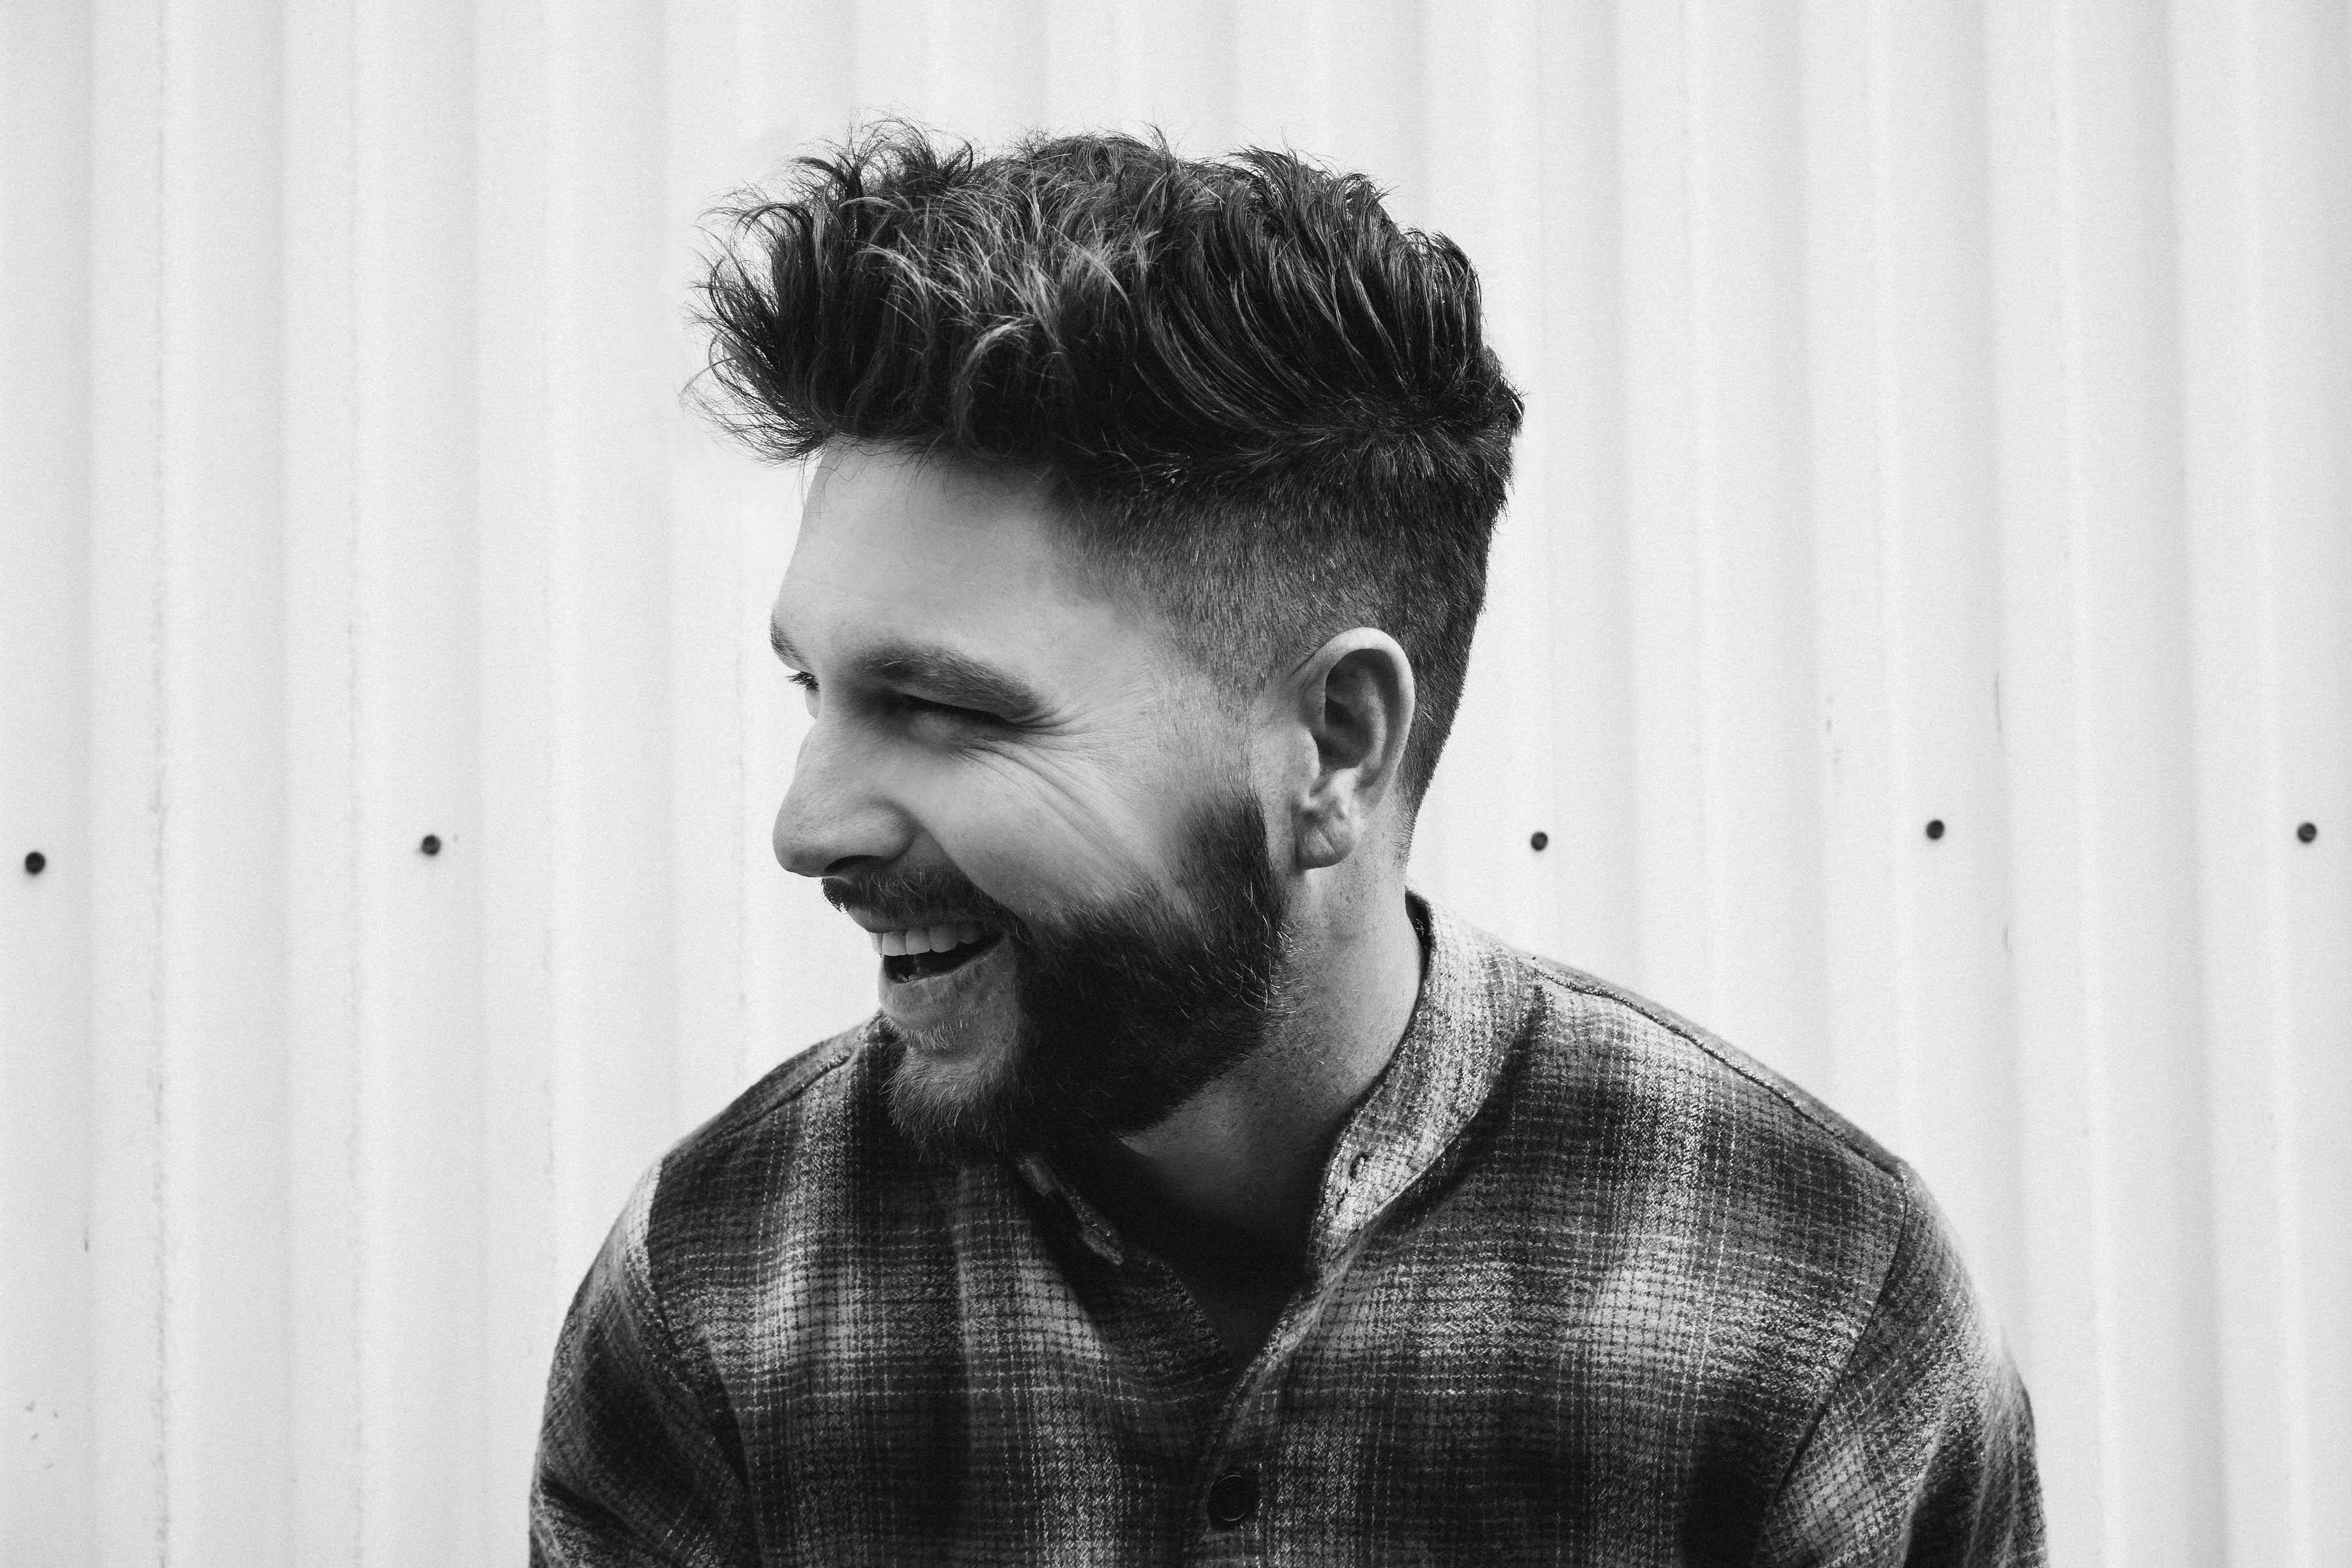 Chris Lane brings home most added song at country radio